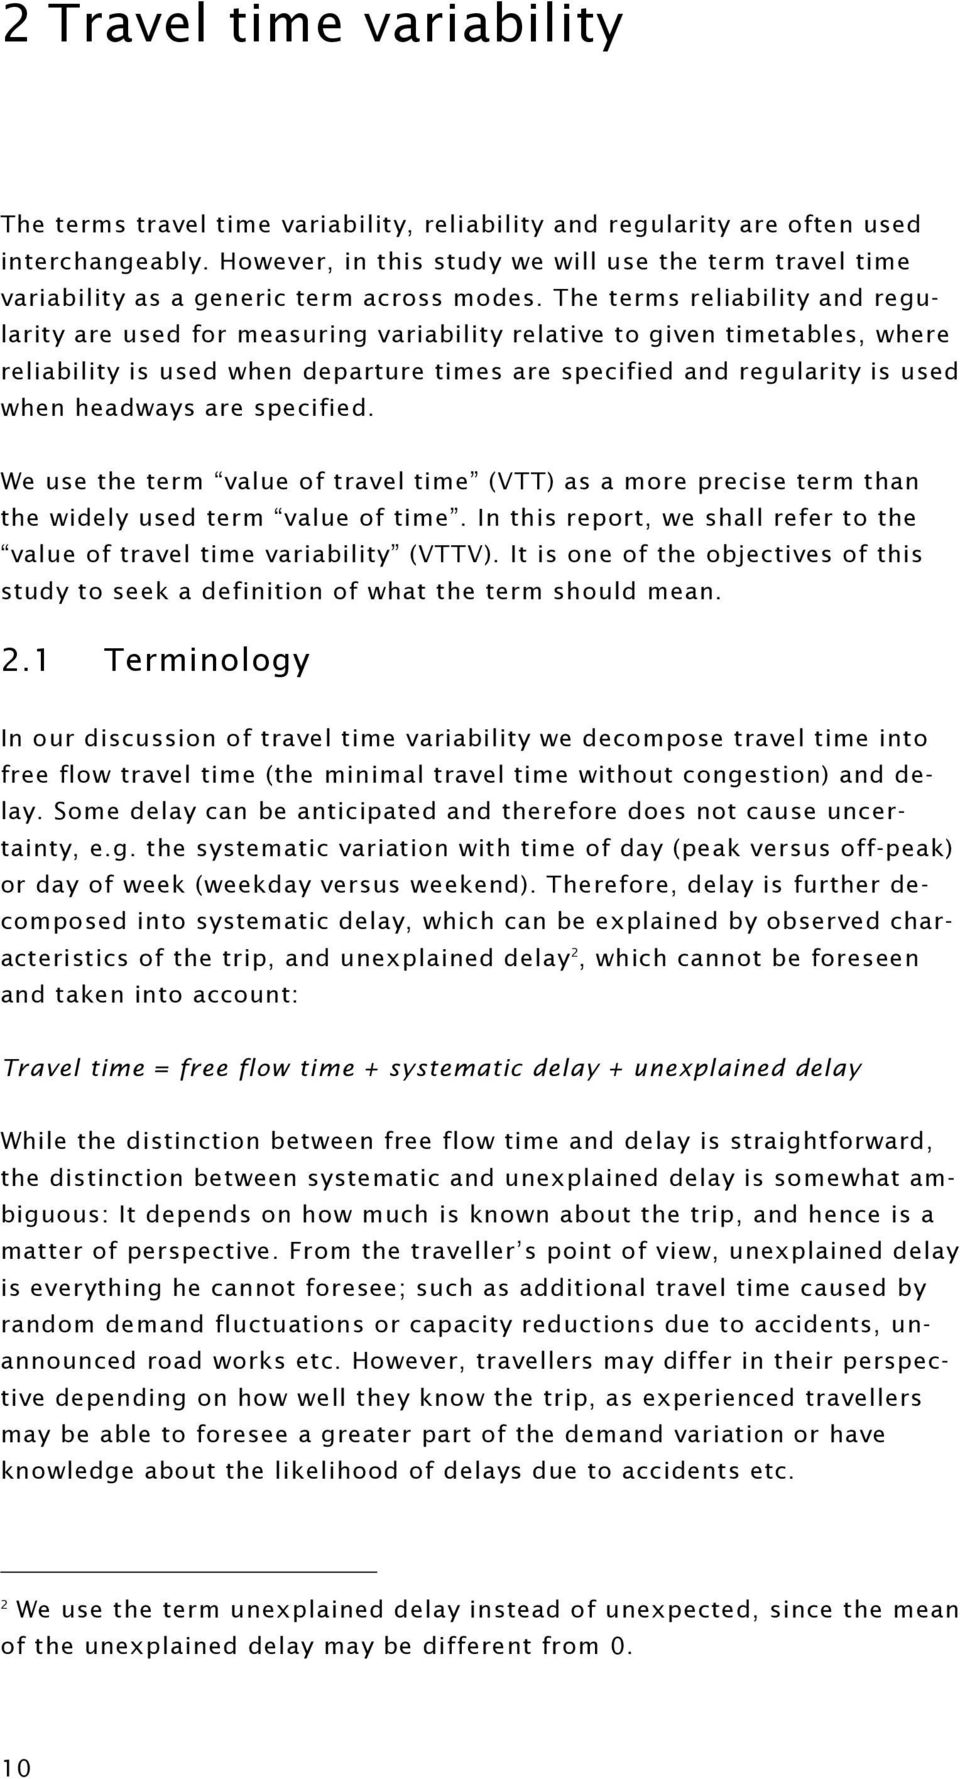 The terms reliability and regularity are used for measuring variability relative to given timetables, where reliability is used when departure times are specified and regularity is used when headways